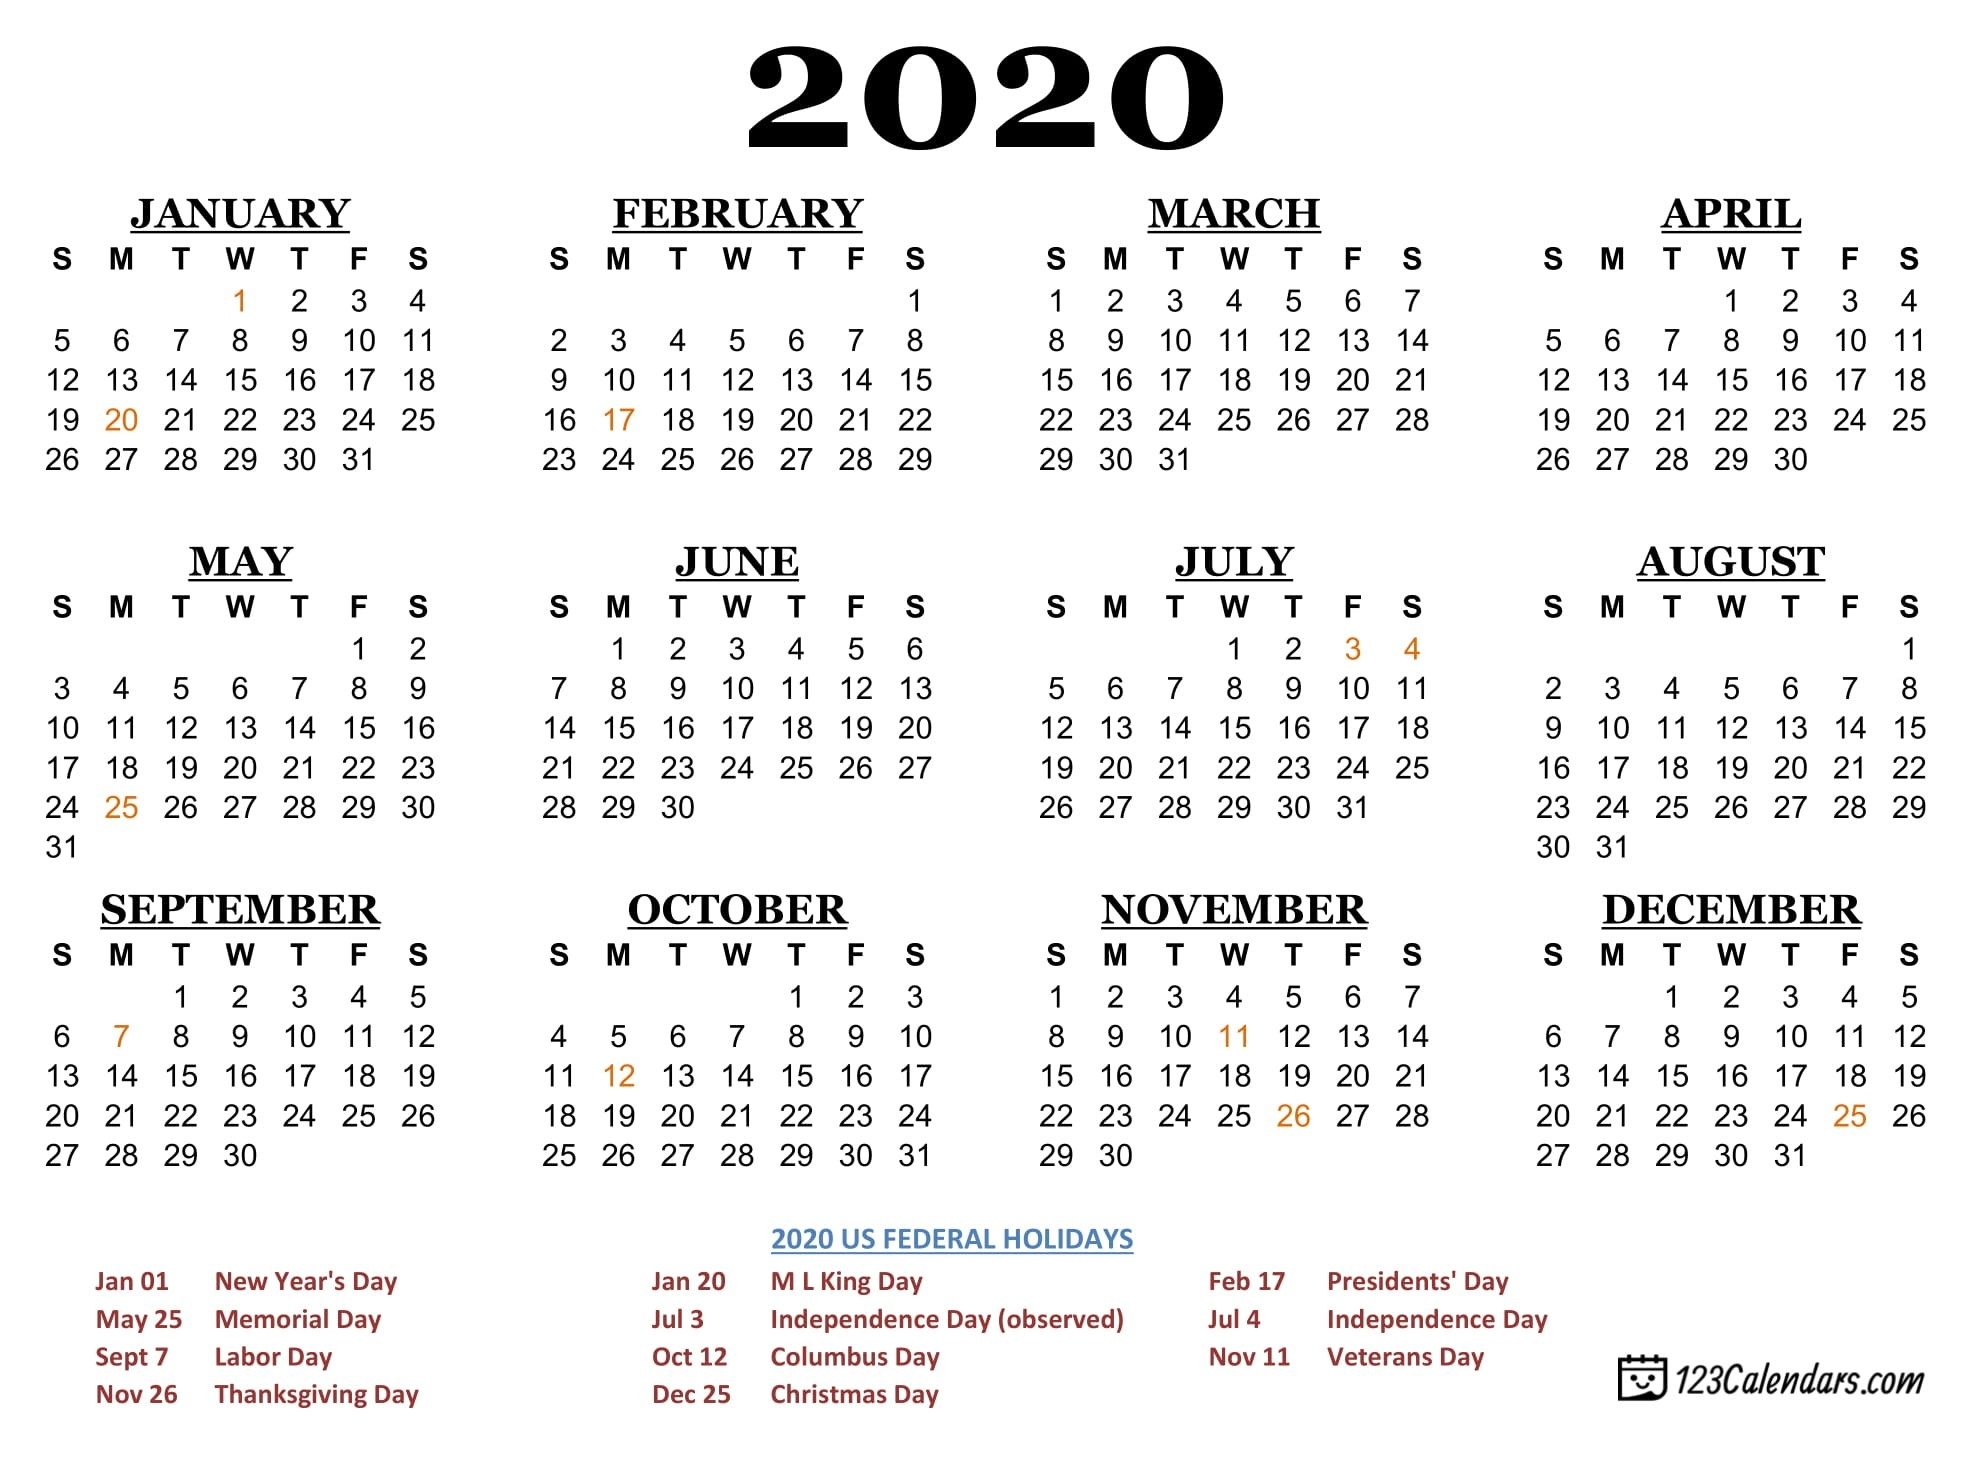 Free Printable Year 2020 Calendar | 123Calendars-Printable 2020 Calendar Showing Holidays